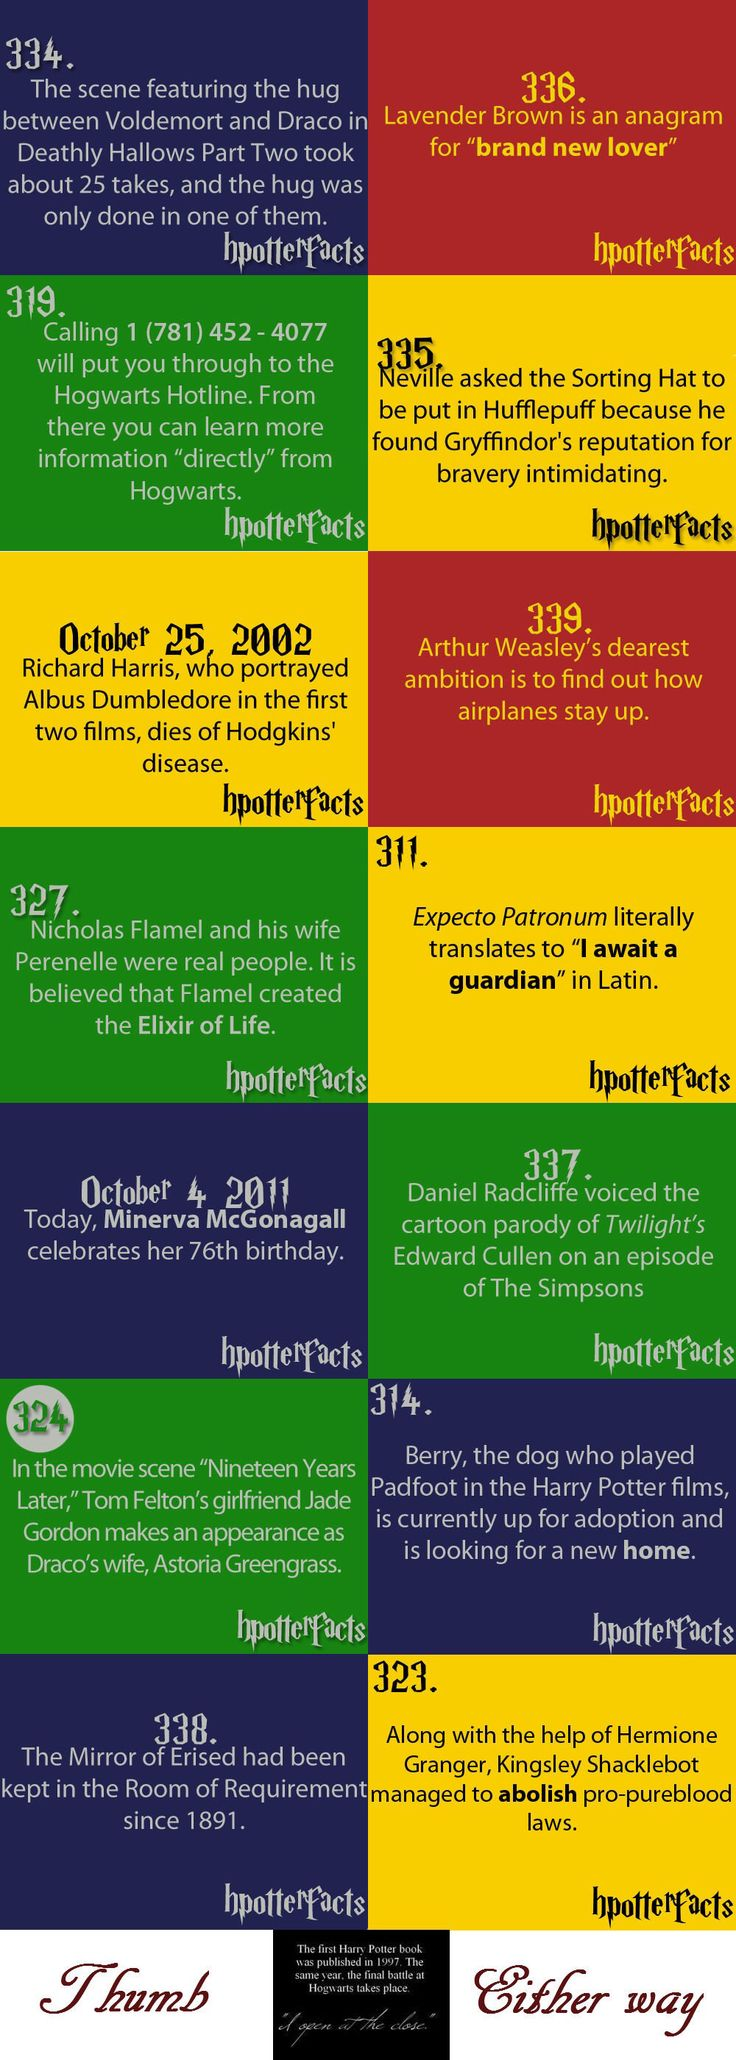 Harry potter facts The Hogwarts hotline looks more like an American number than a British one to me